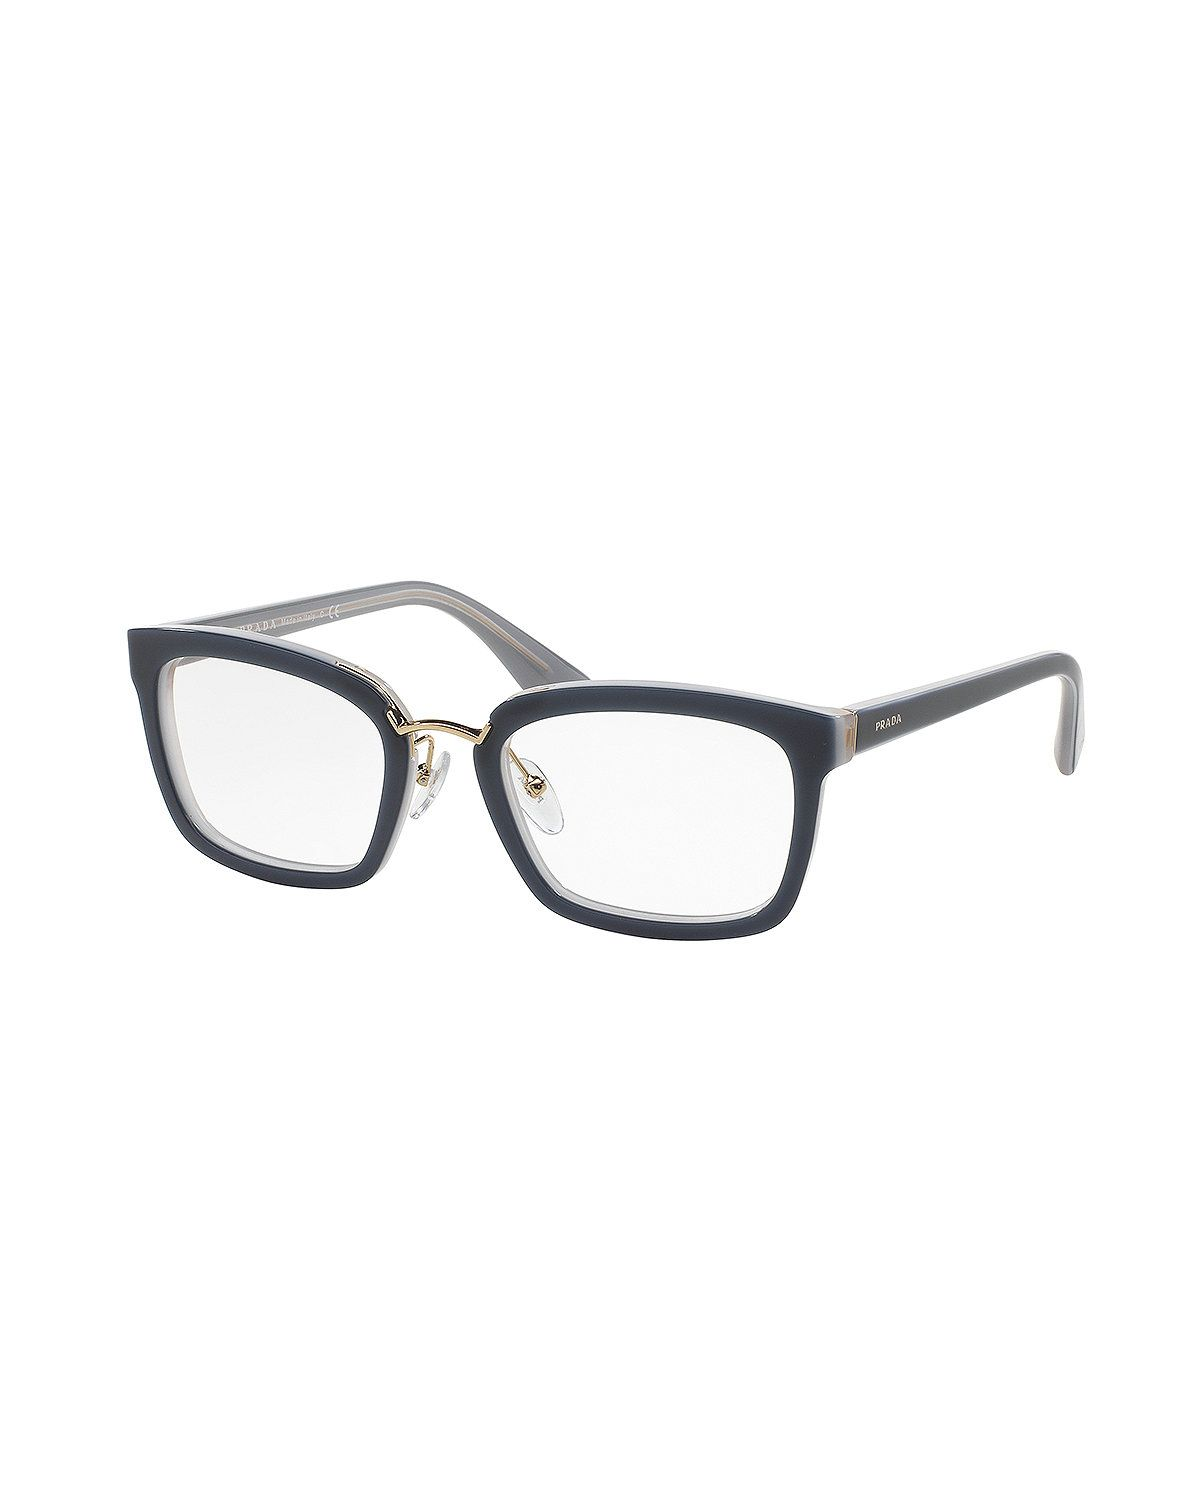 Eyeglass Frames For Gray Hair : Square Fashion Glasses, Blue Gray Hair & Glasses ...